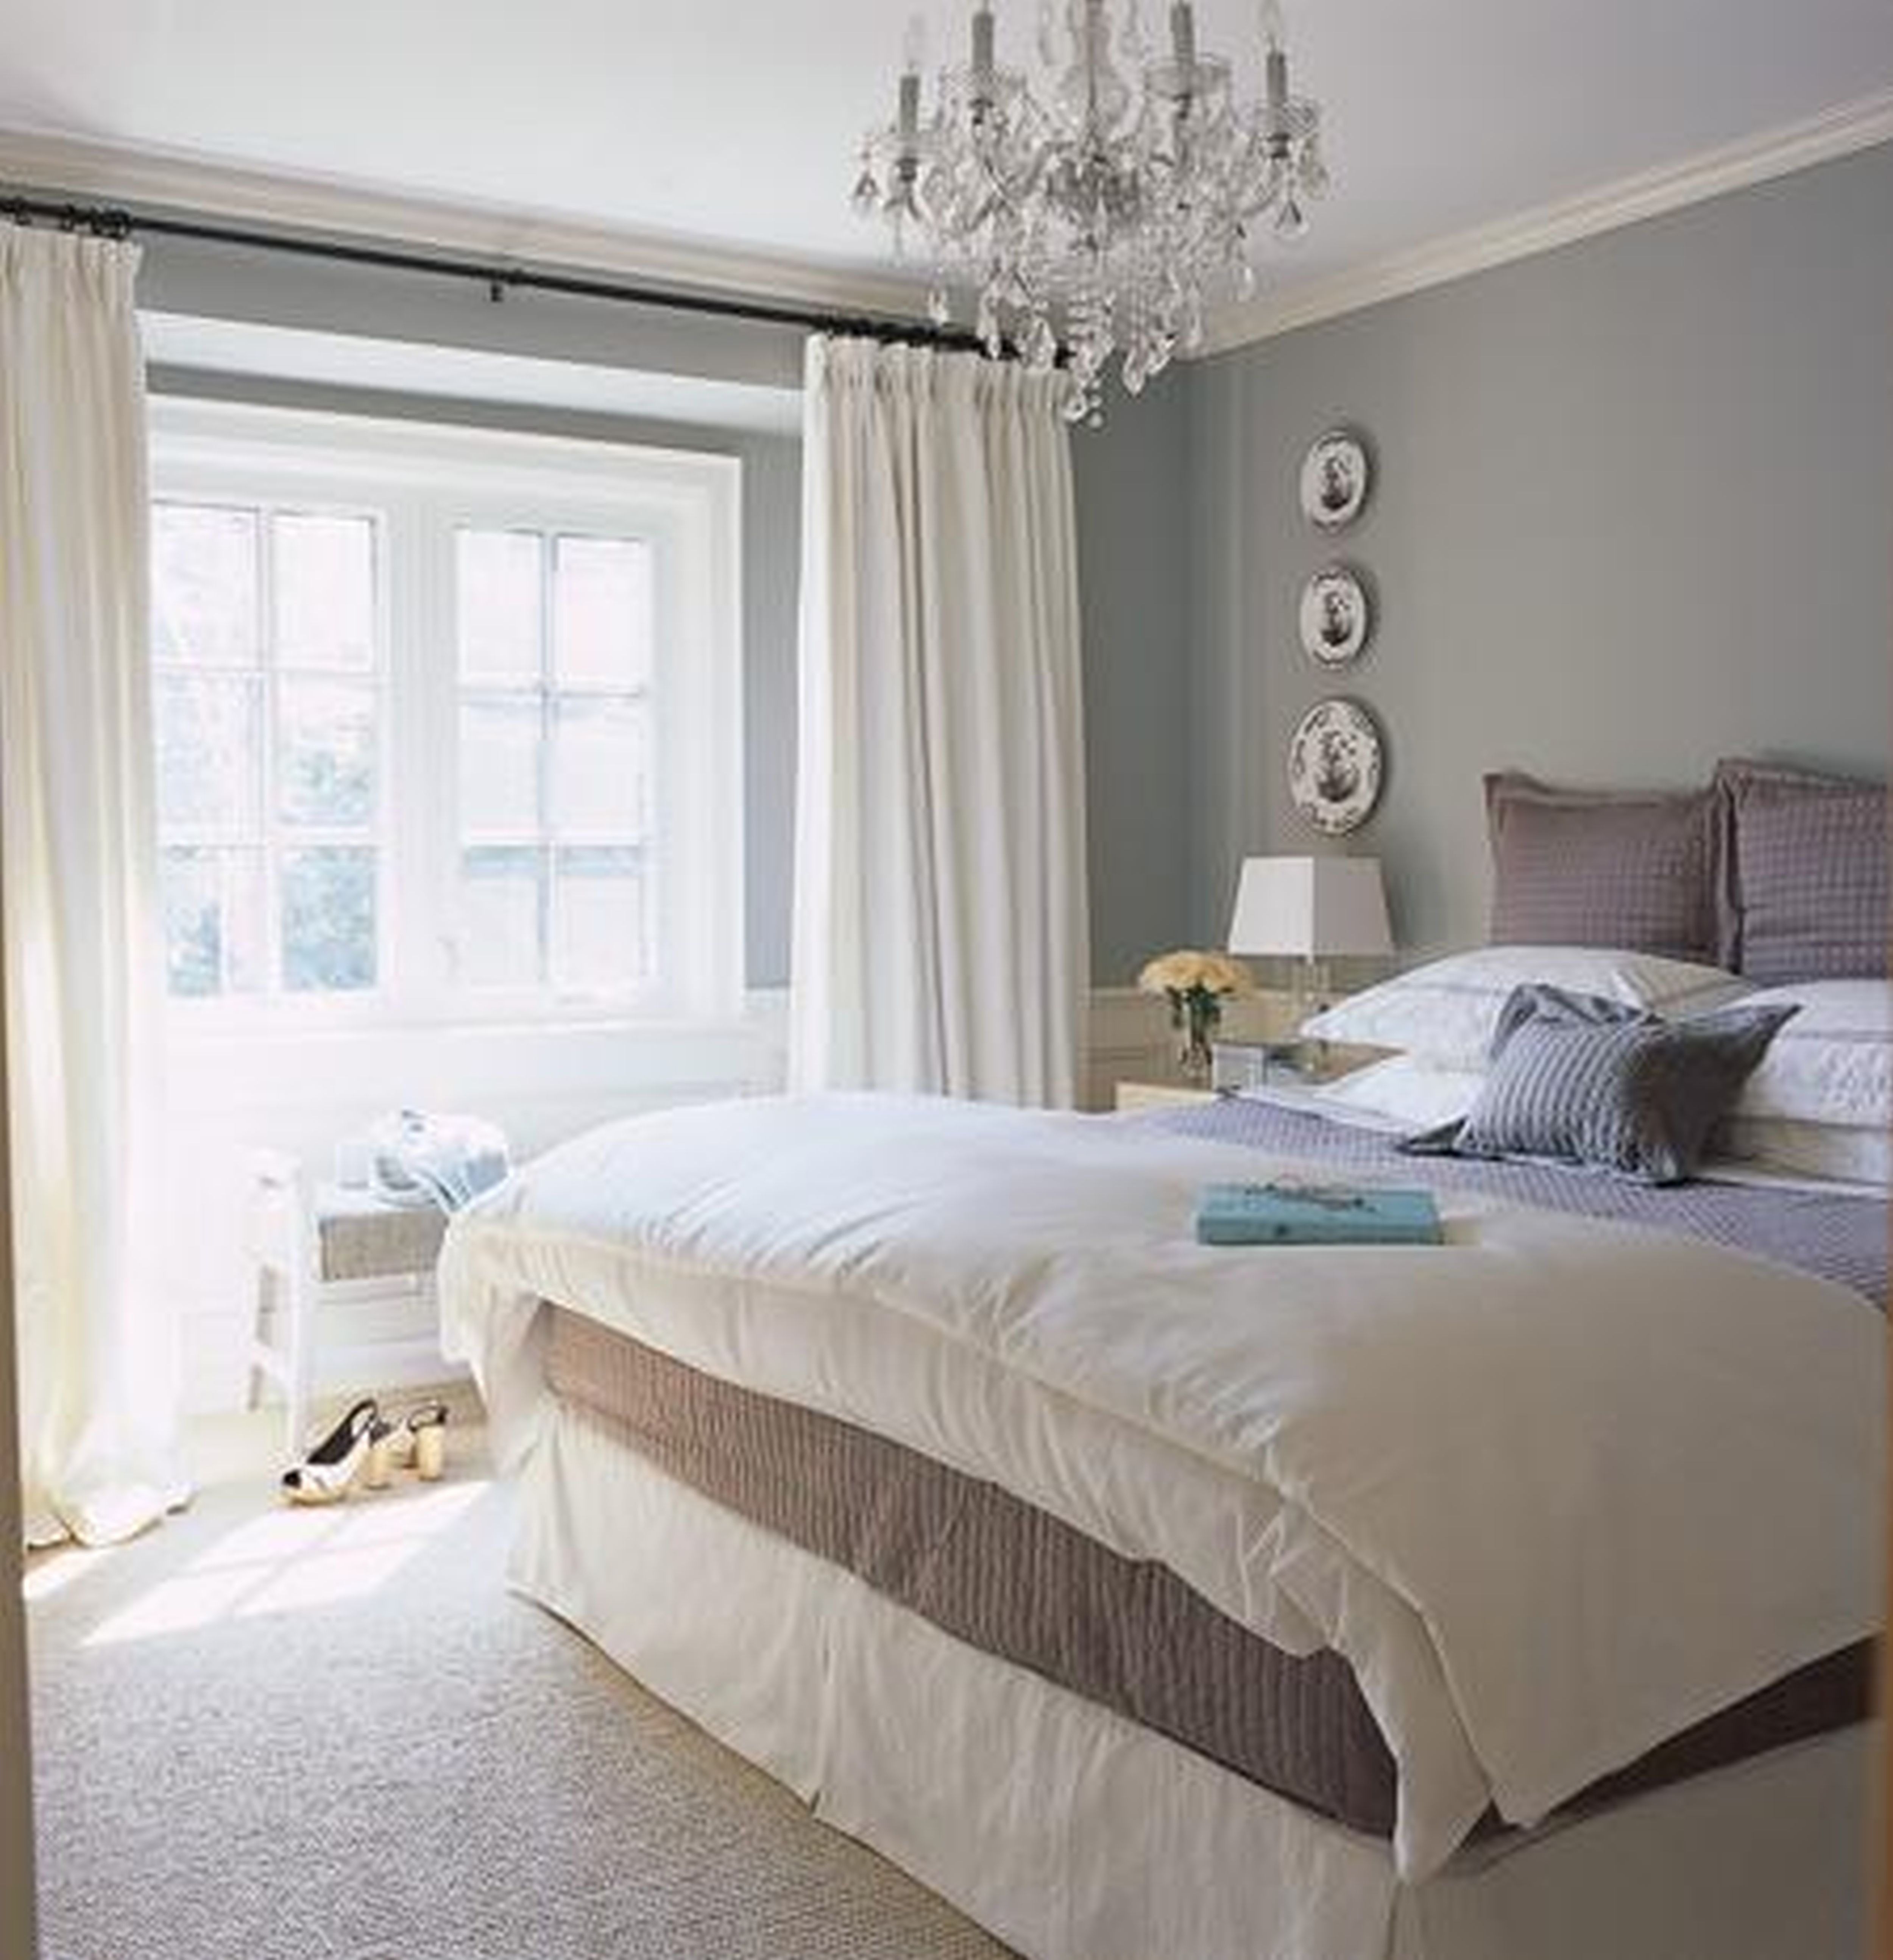 Master bedroom grey and white  Master Bedroom With Light Gray Walls  Ideas for the House